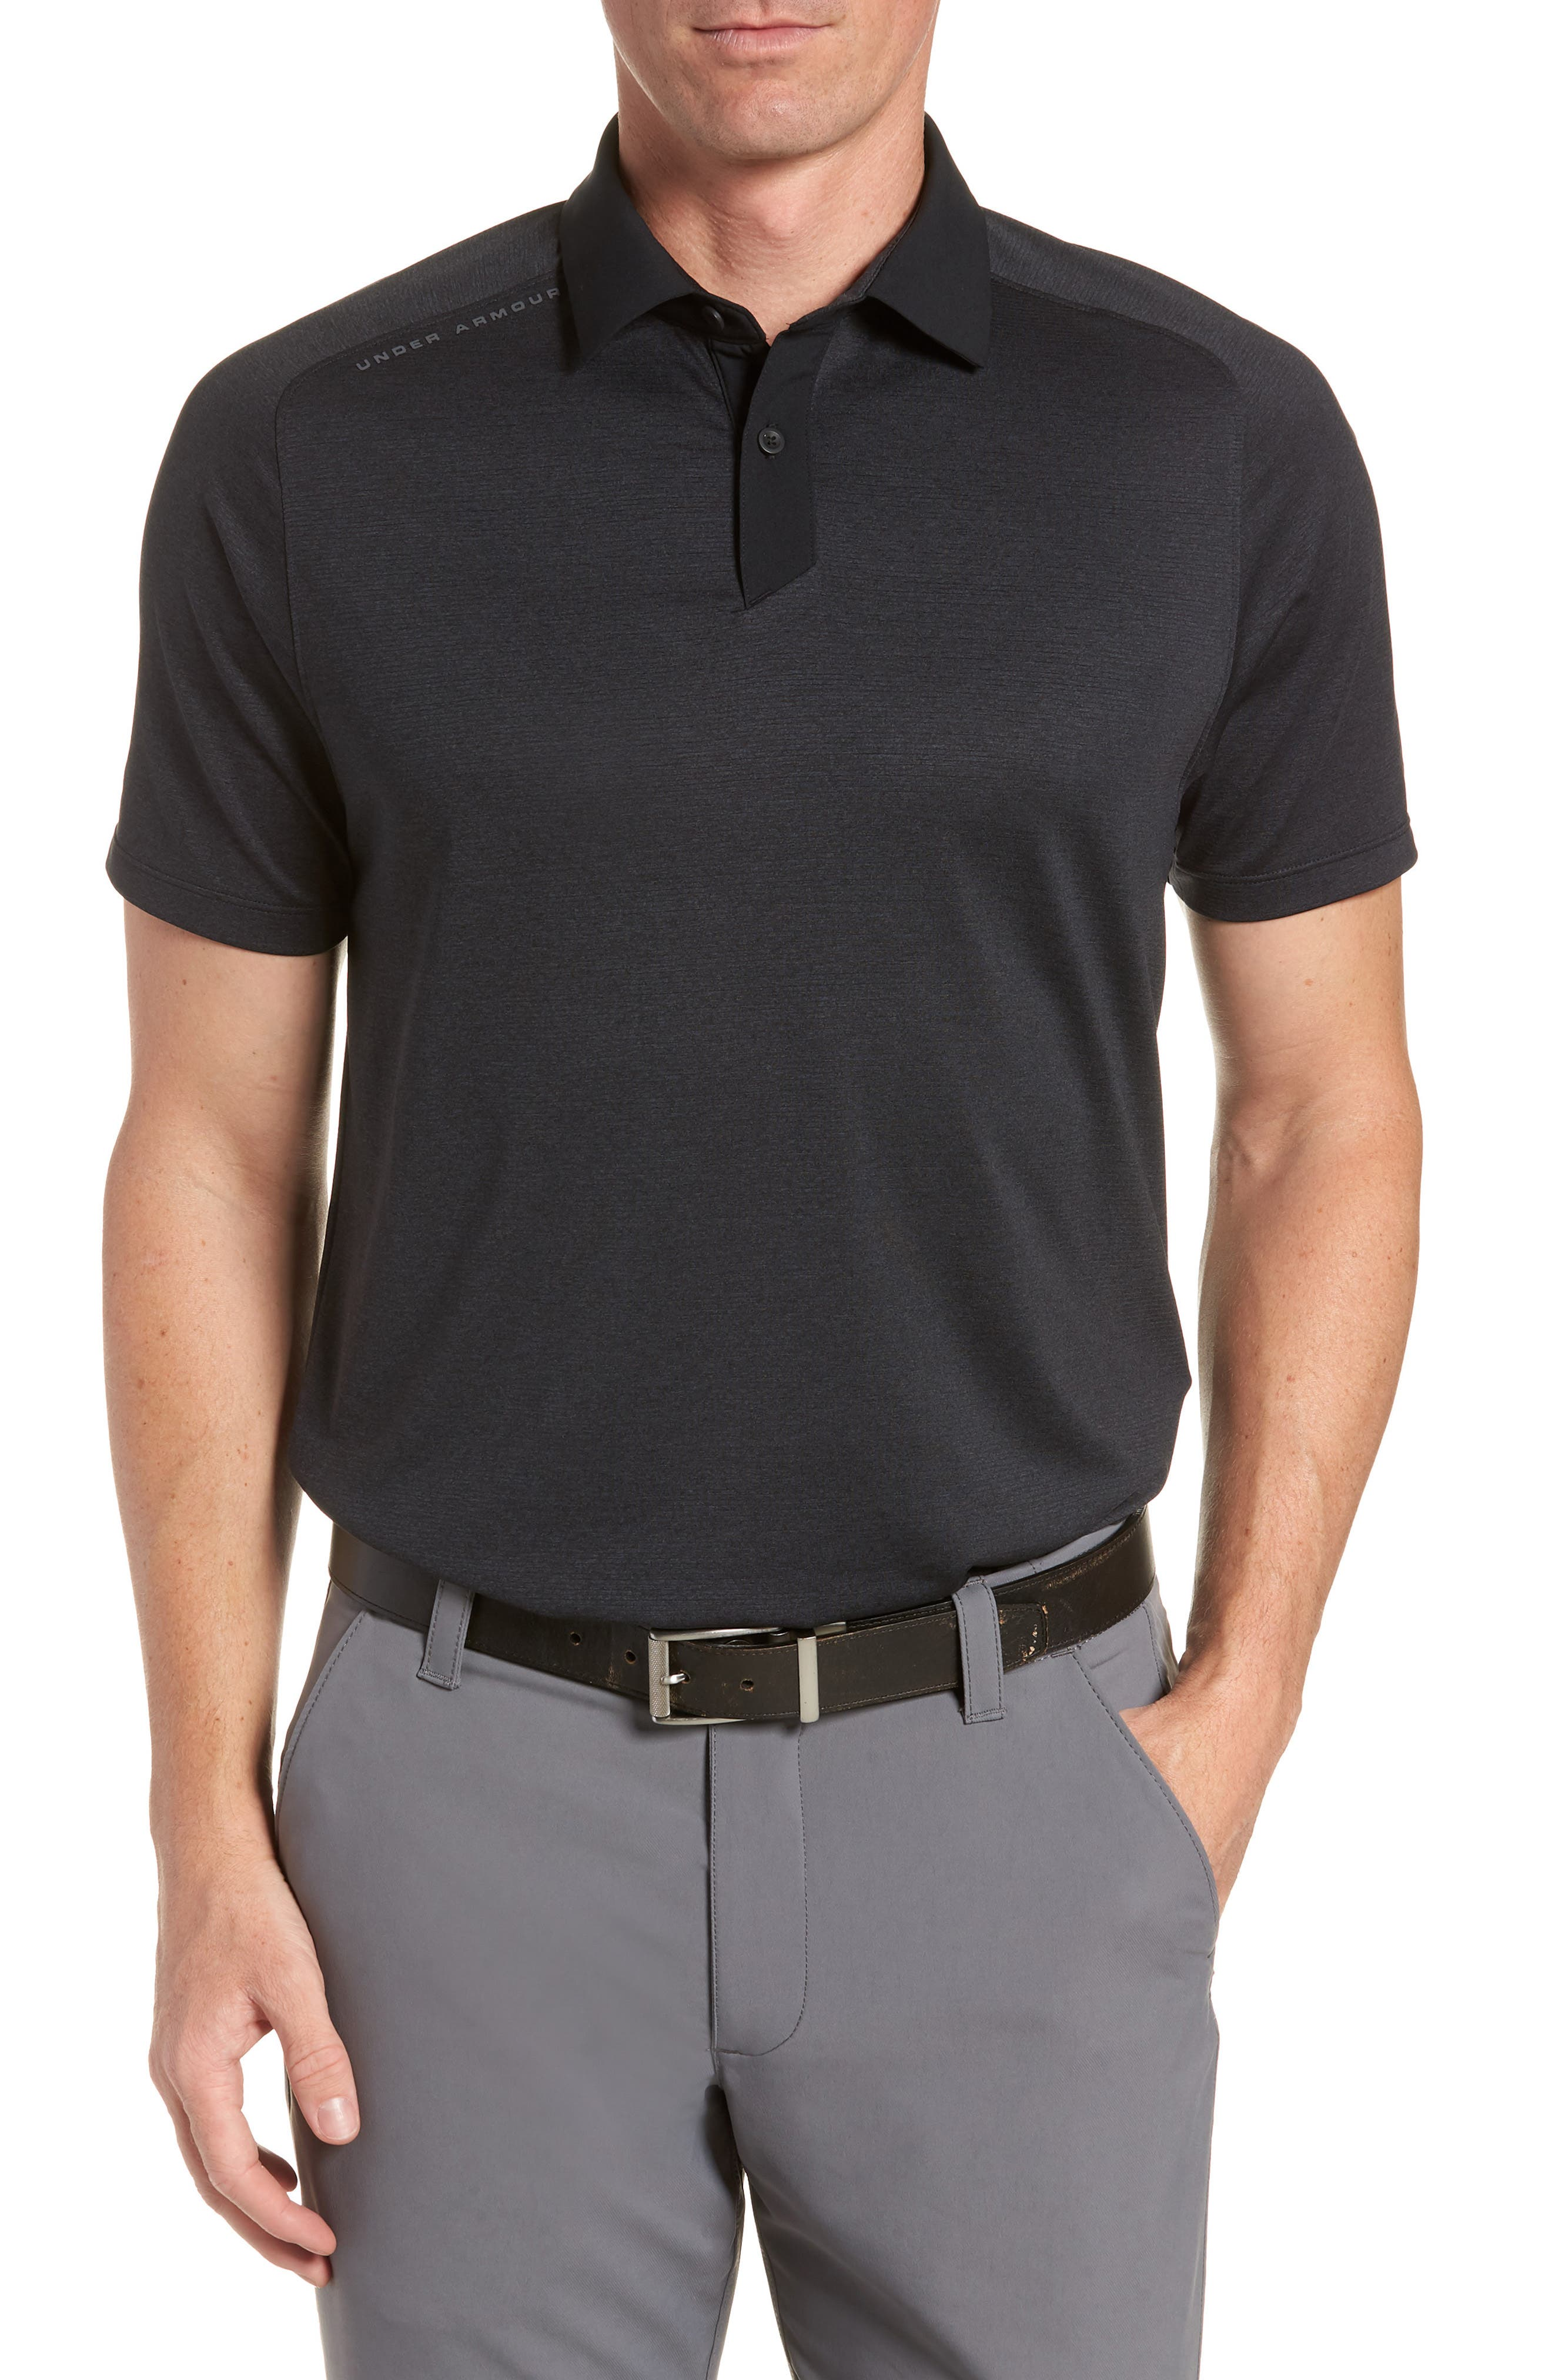 Regular Fit Threadborne Polo,                         Main,                         color, 001 Blk Fll Heathr Blk Wht